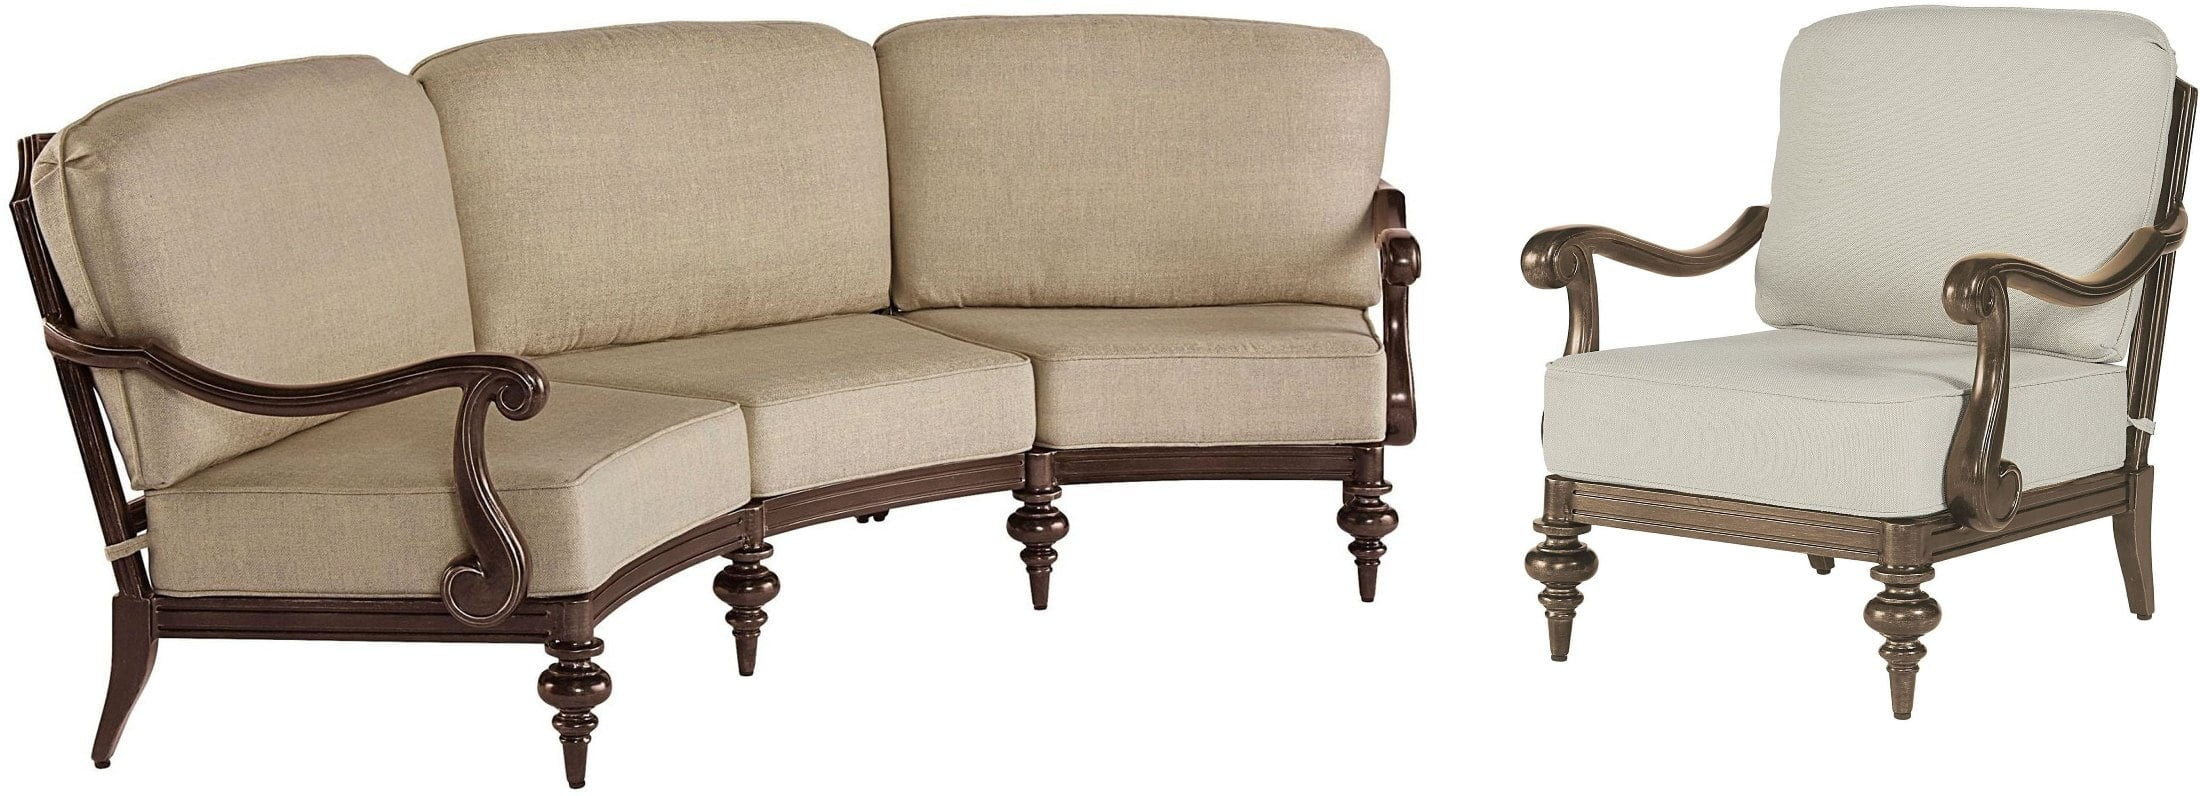 Arch Salvage Tobacco Cannes Living Room Set from ART | Coleman Furniture